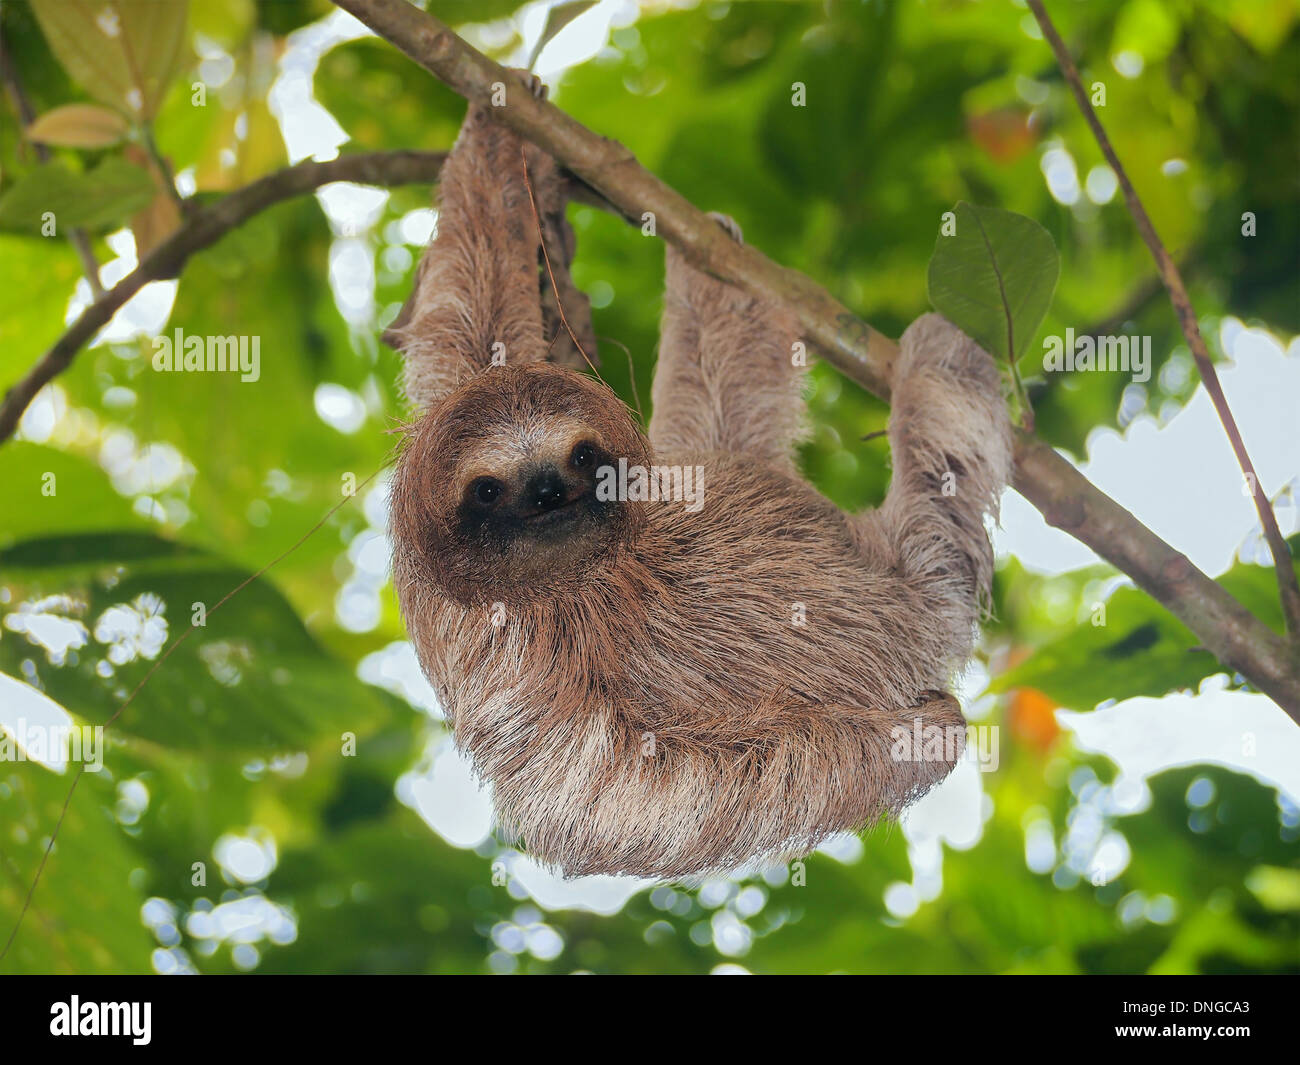 Young brown throated sloth hanging from a branch in the jungle, Bocas del Toro, Panama, Central America Stock Photo